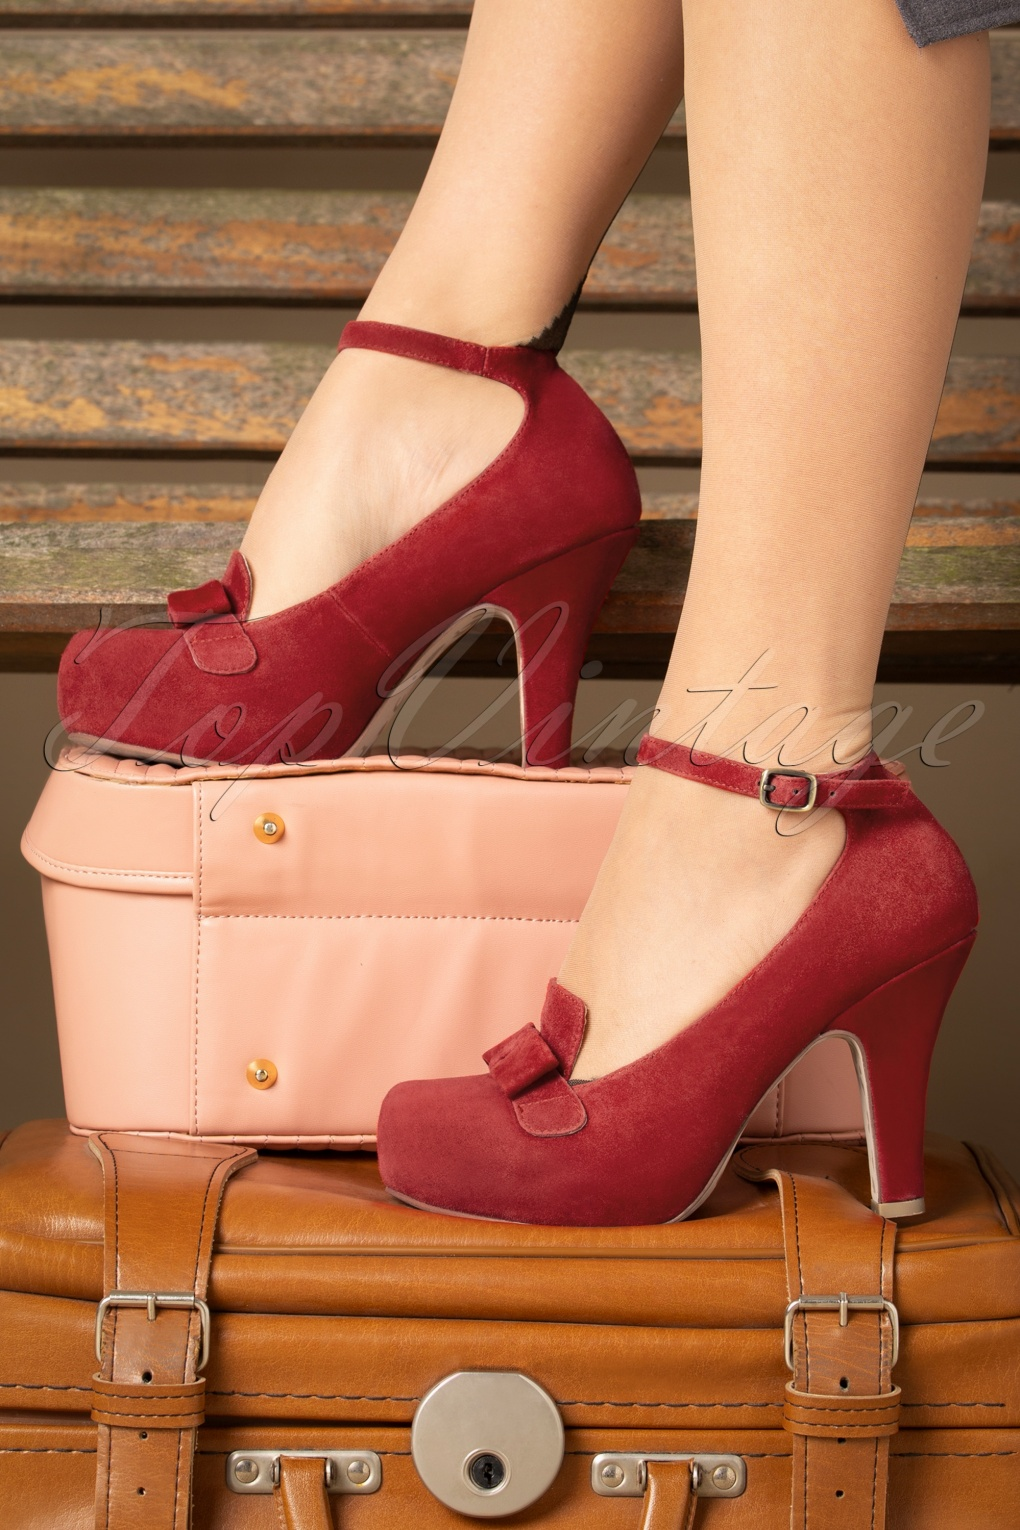 Vintage Shoes, Vintage Style Shoes 40s Angie On Adventure Pumps in Warm Red £107.32 AT vintagedancer.com